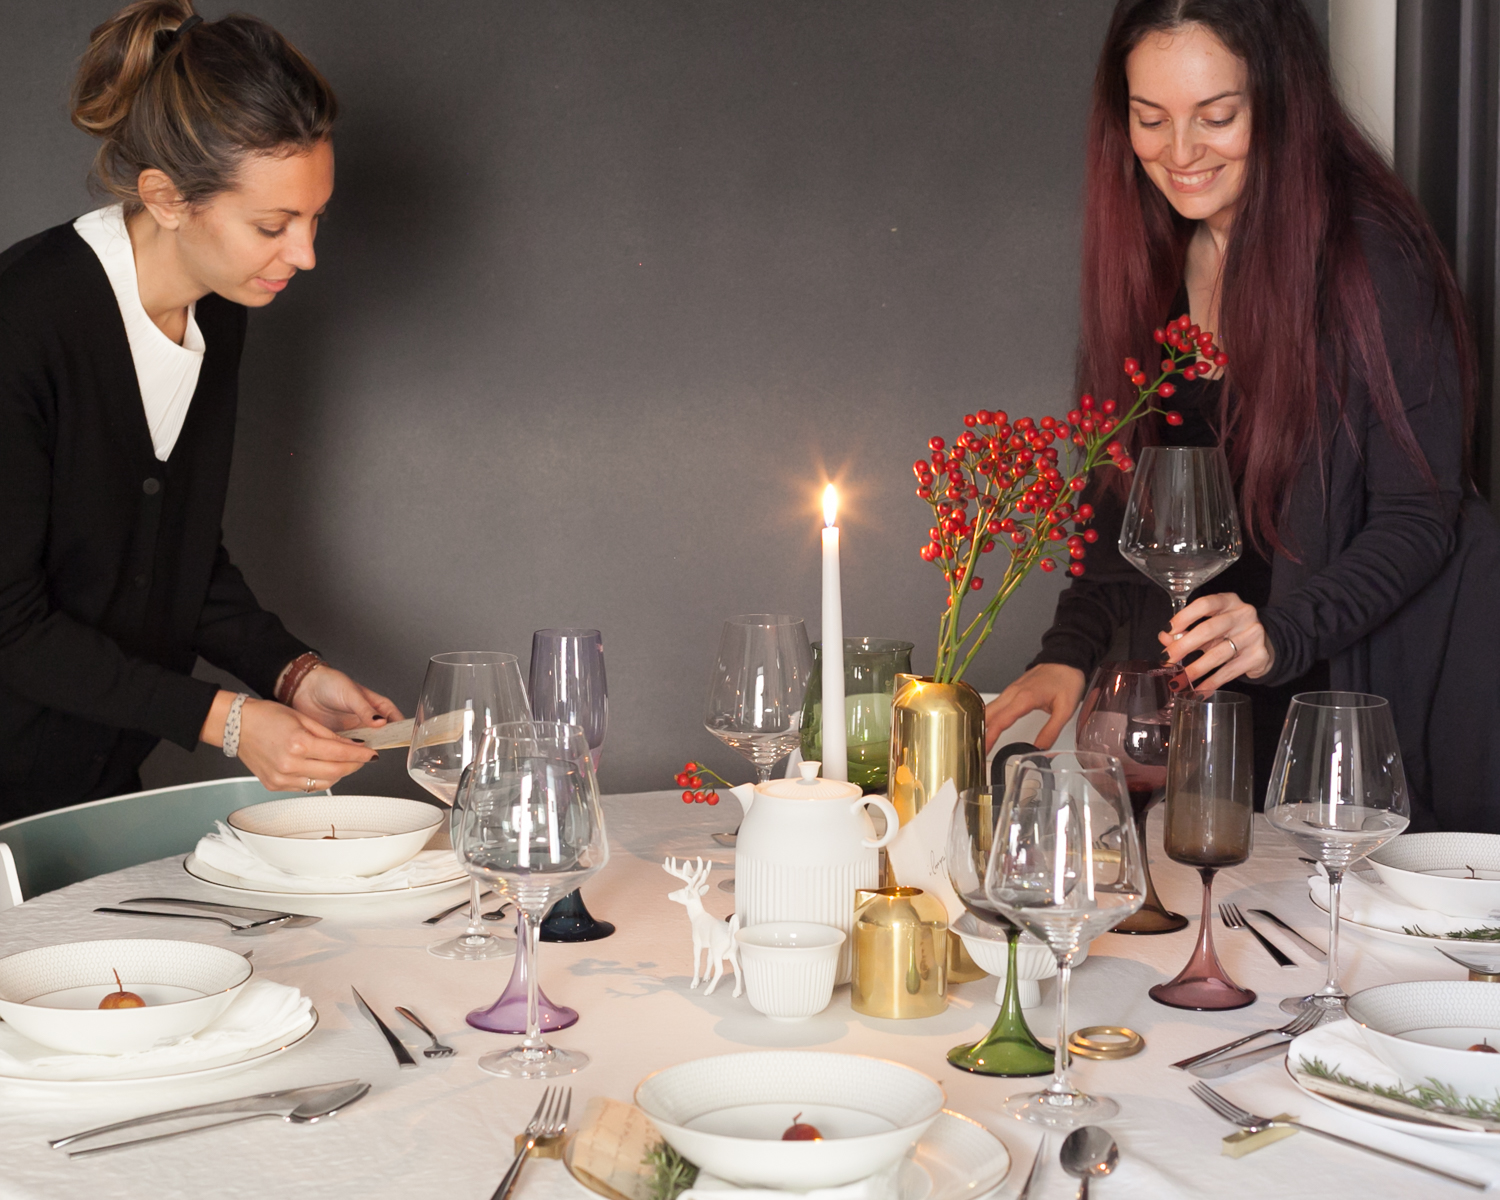 SET THE TABLE STYLING EVENTO SPAZIO MATERIAE NAPOLI FORME DI FARINA TAVOLA NATALE PHOTO (1 di 6).jpg